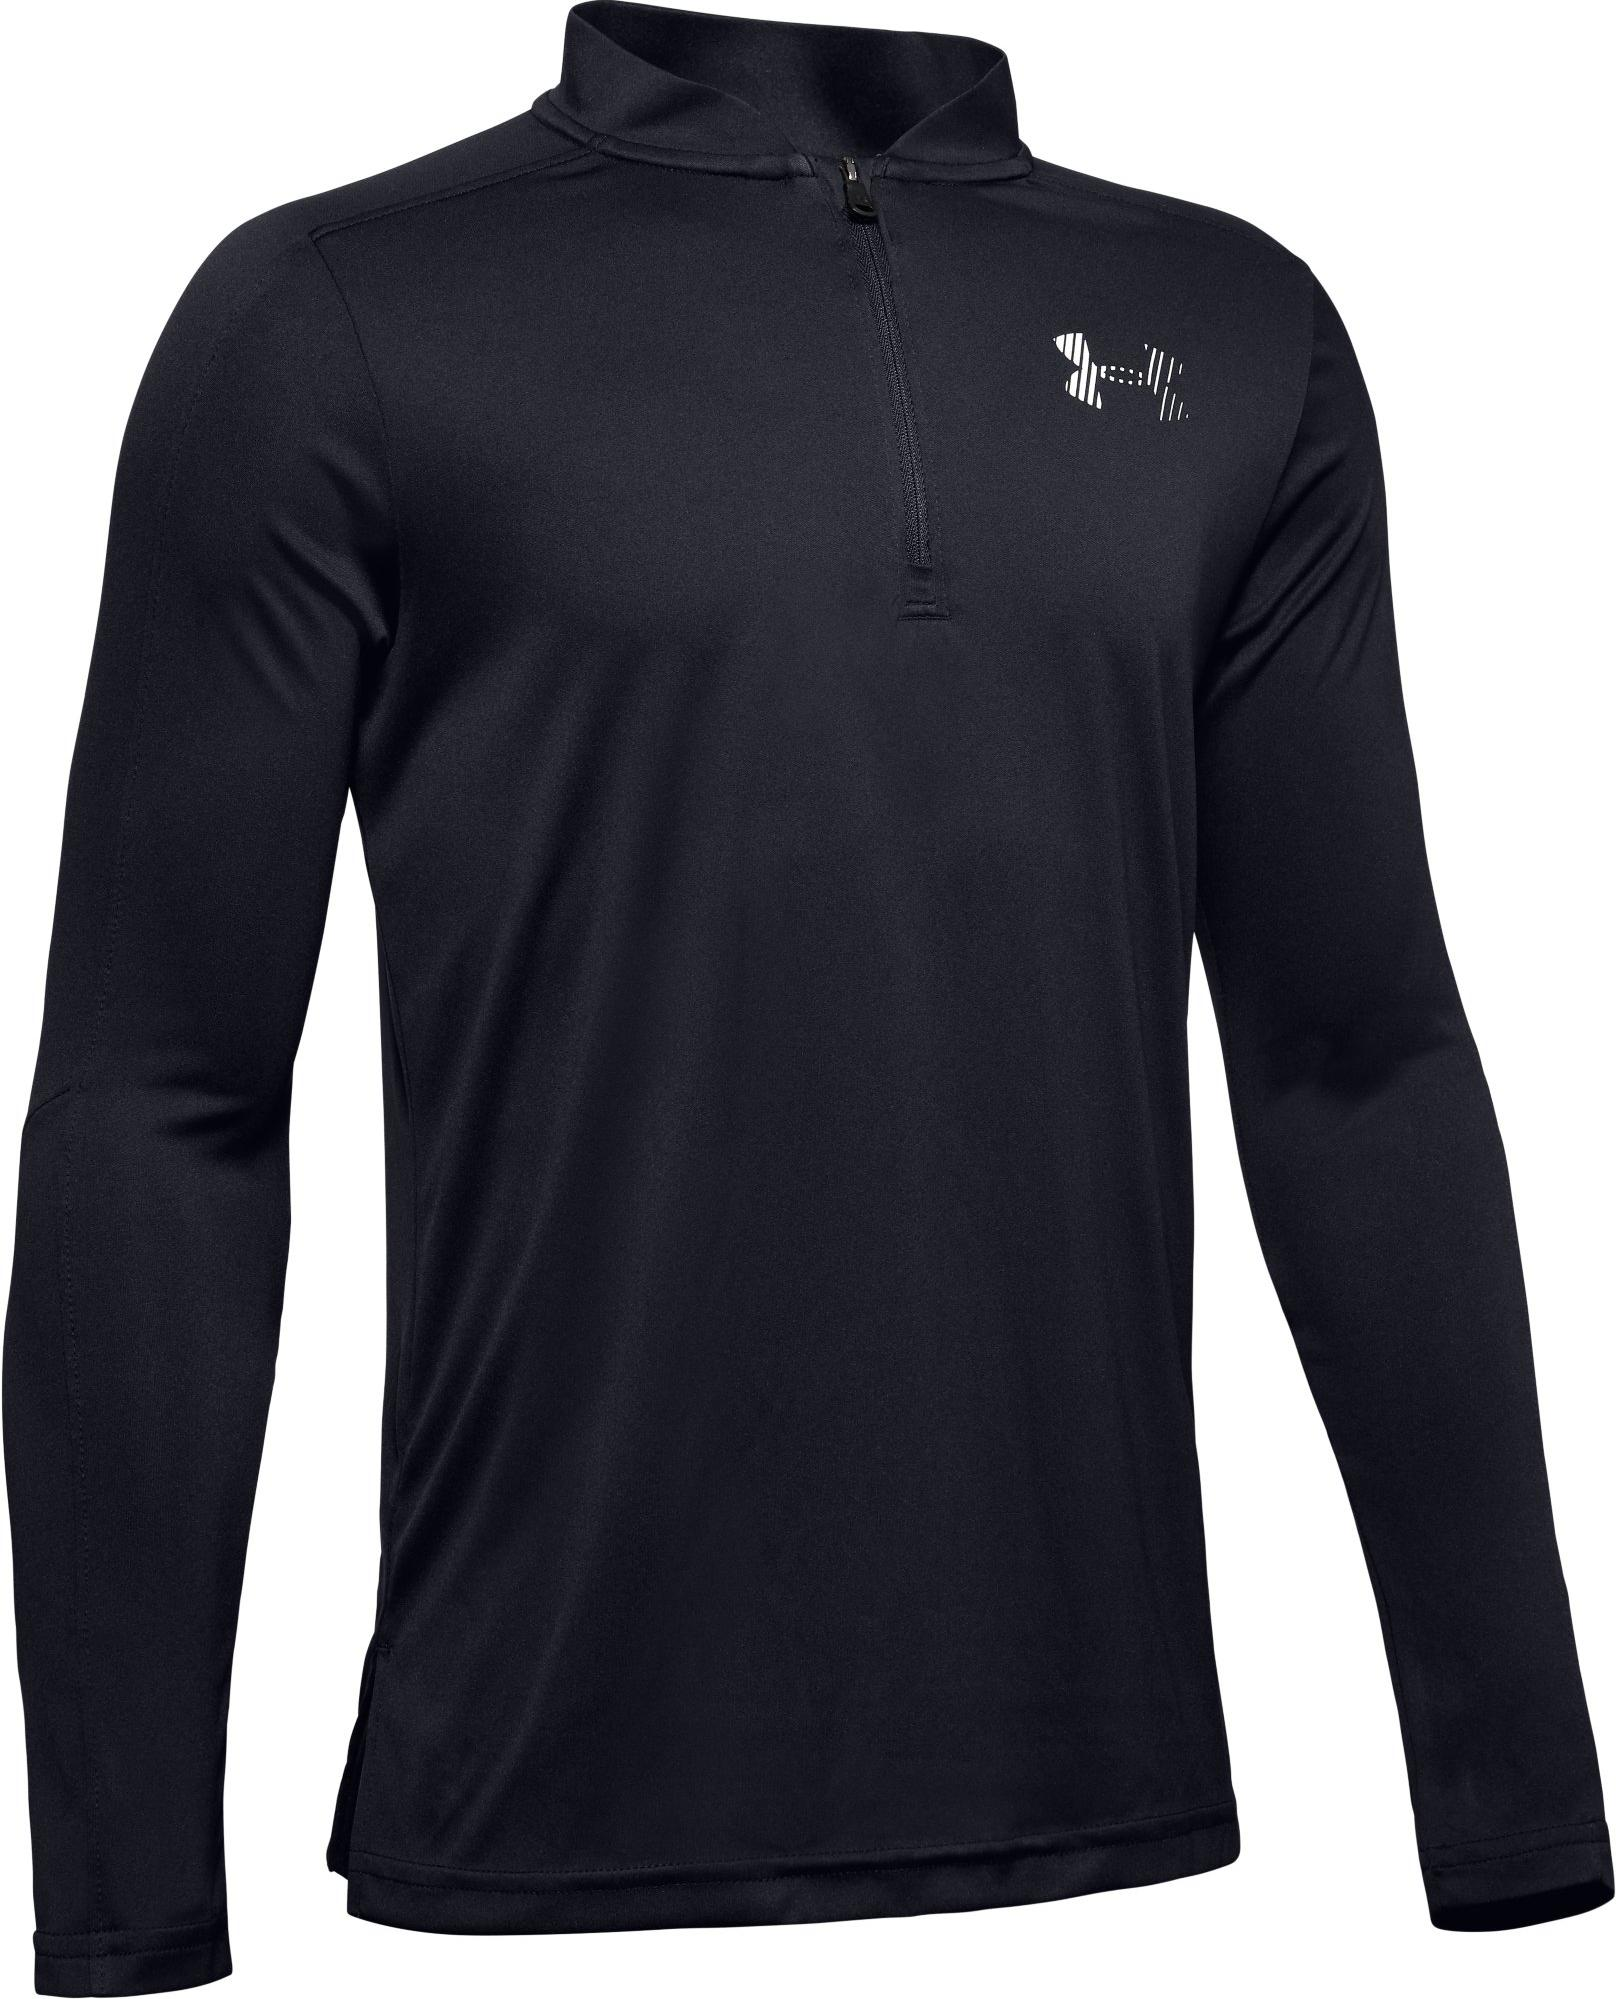 Langarm-T-Shirt Under Armour MK1 1/2 Zip